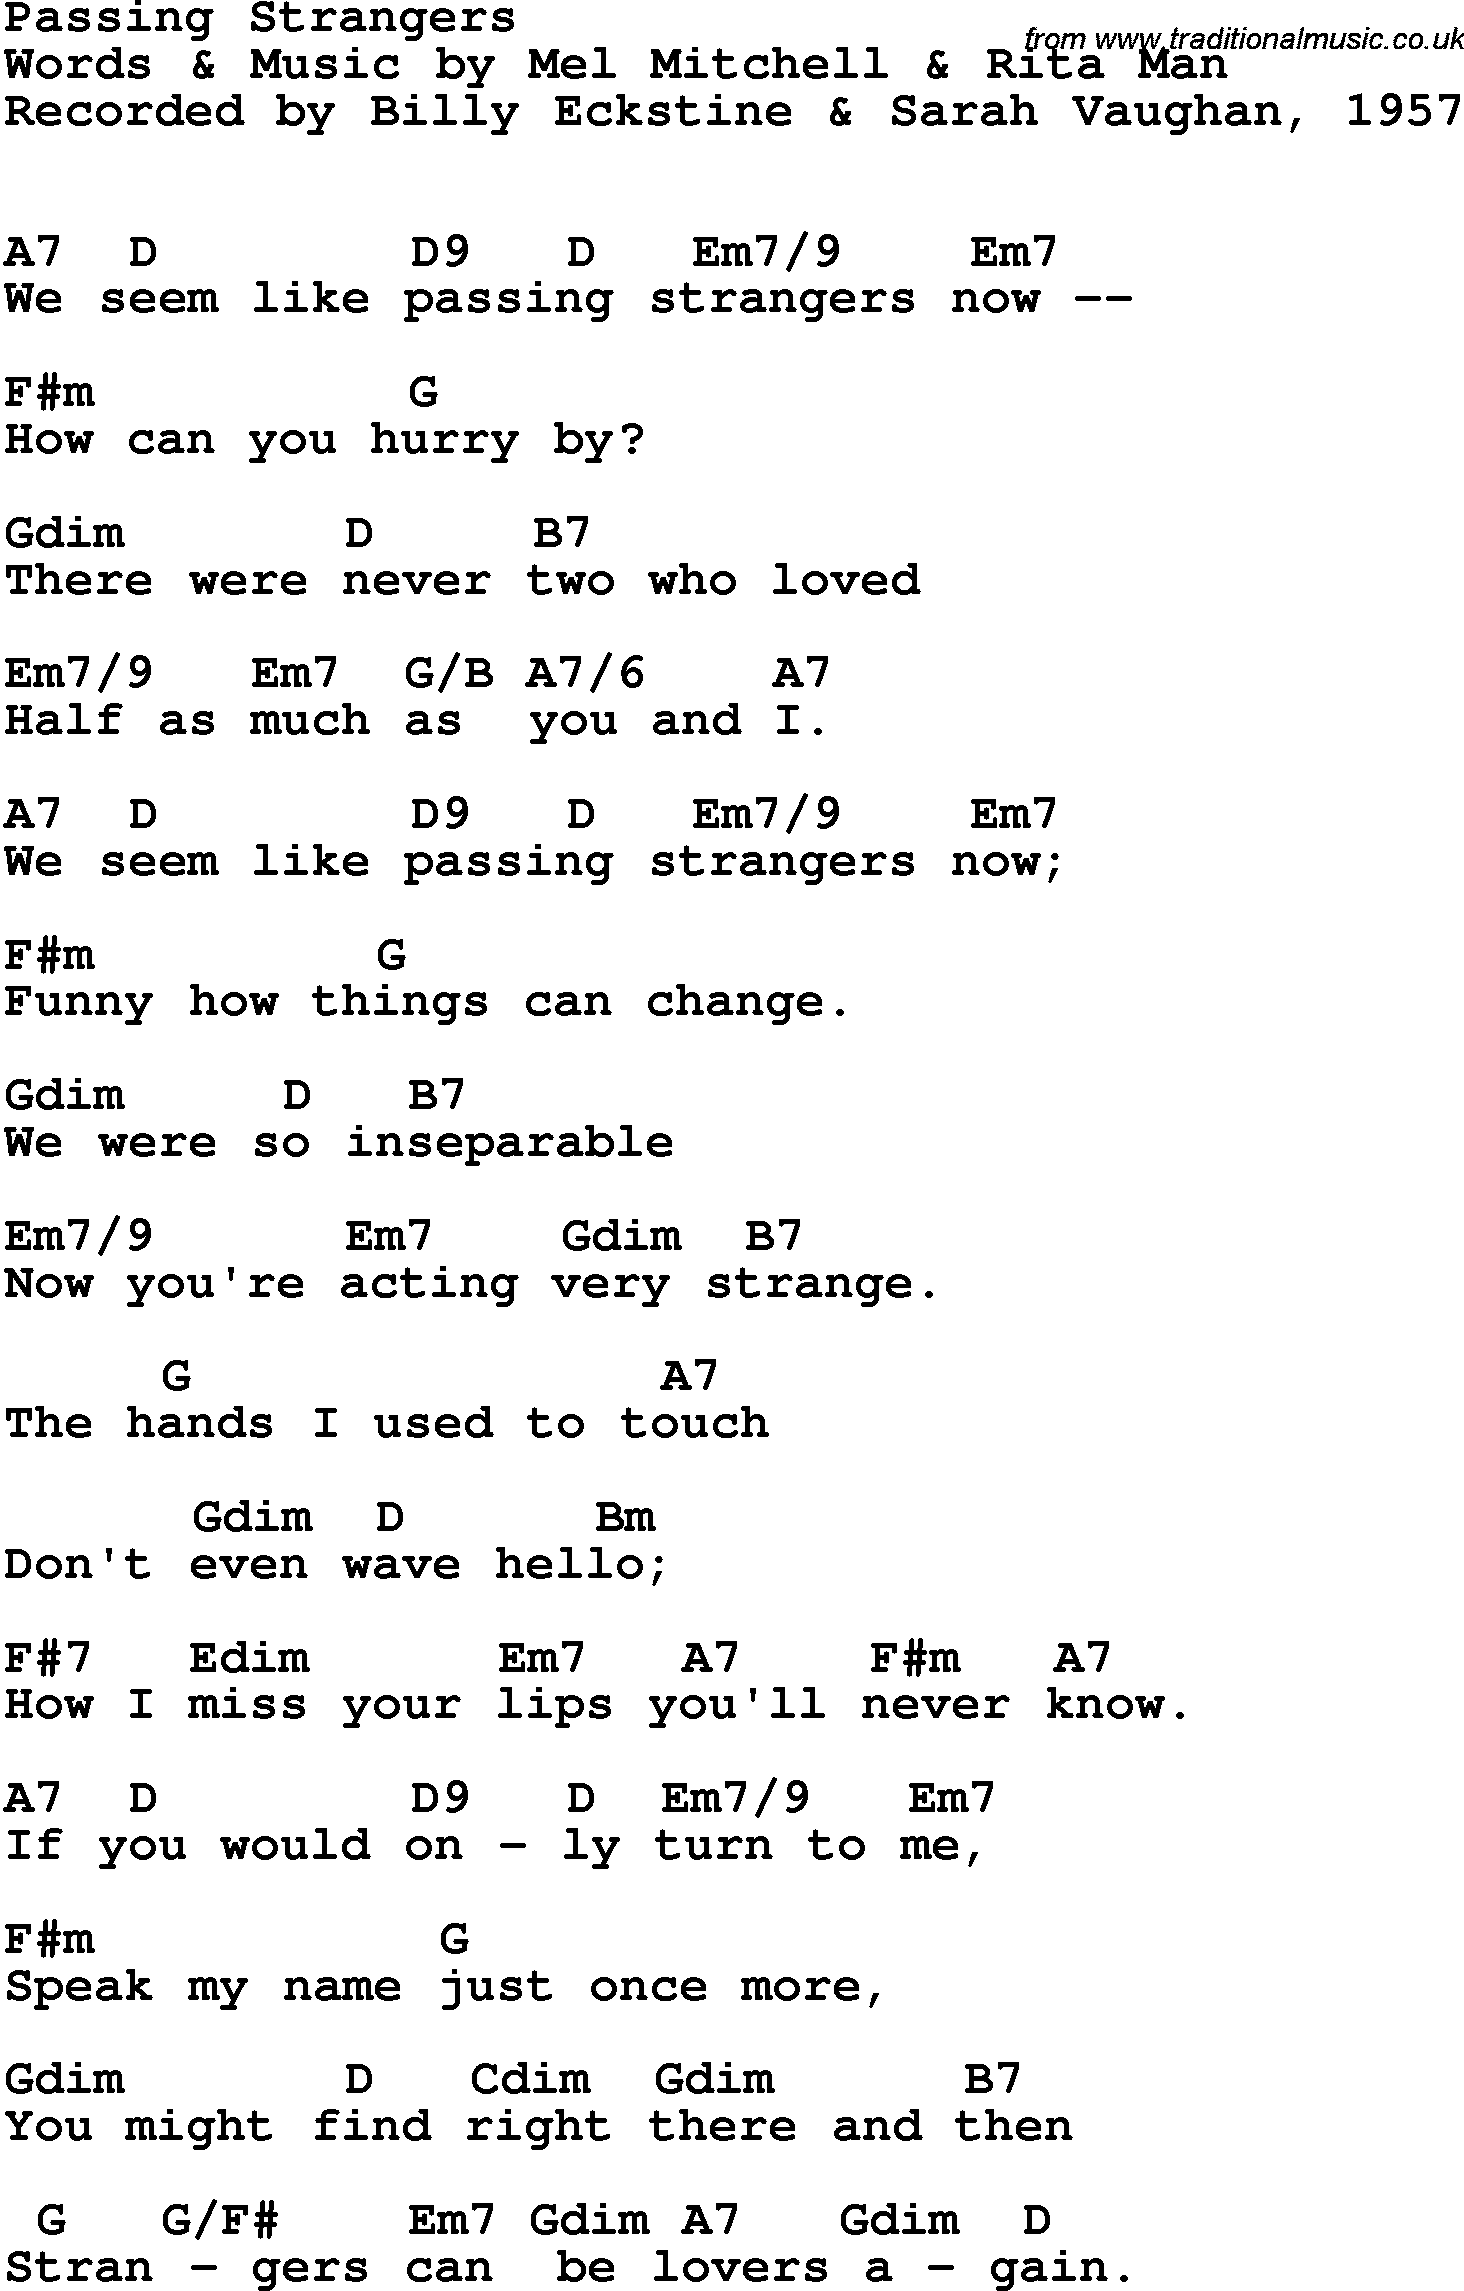 Song Lyrics With Guitar Chords For Passing Strangers Sarah Vaughan